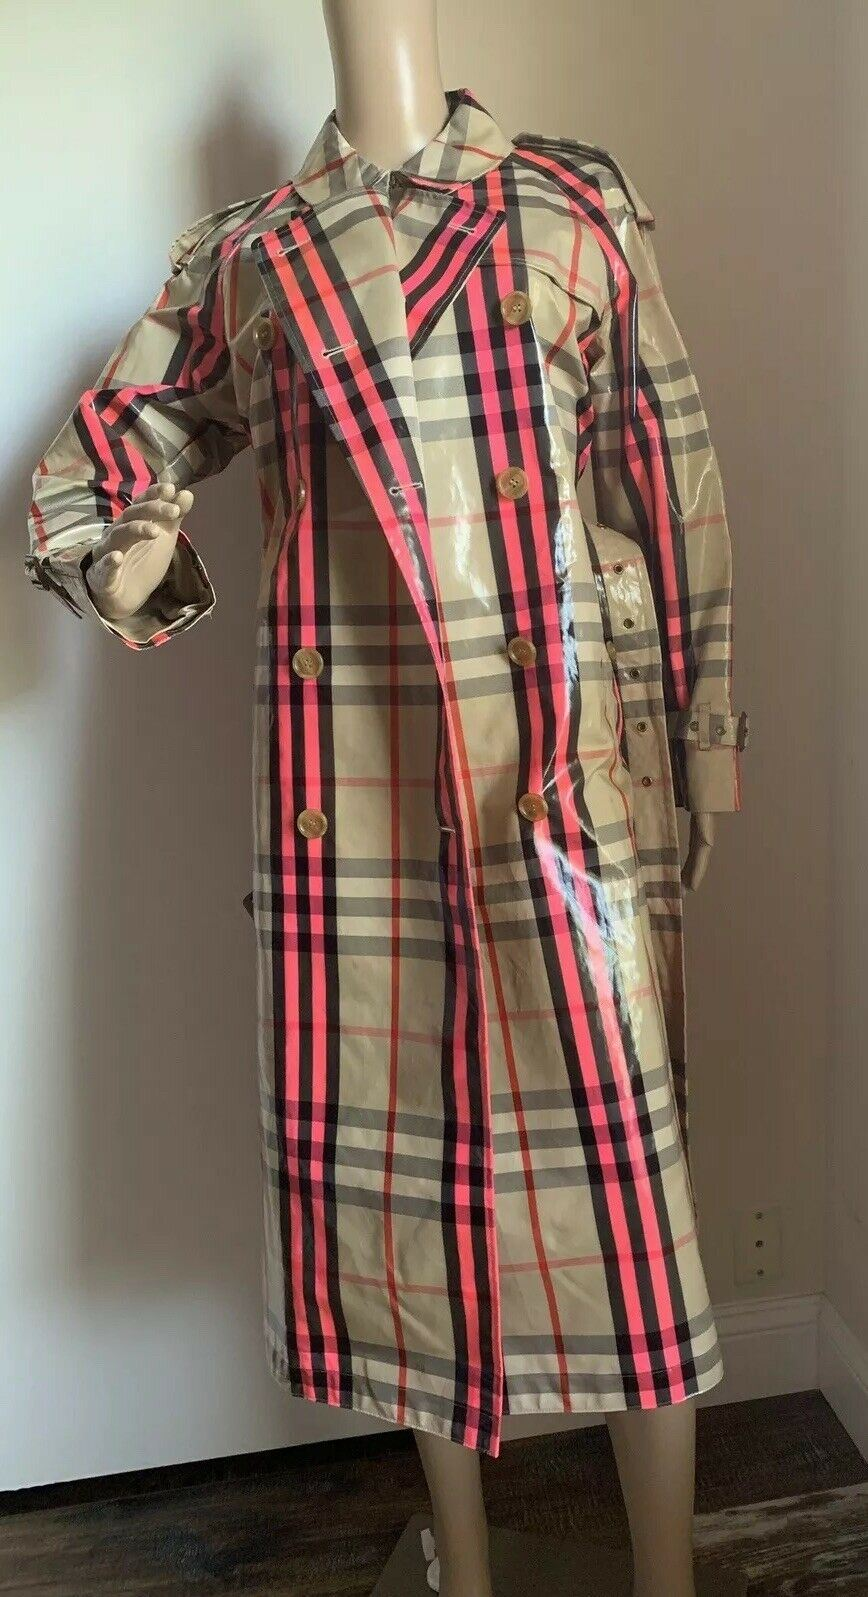 New $2595 Burberry Women's Trench Coat, Coat Neon Pink 6 US ( 40 It ) Italy